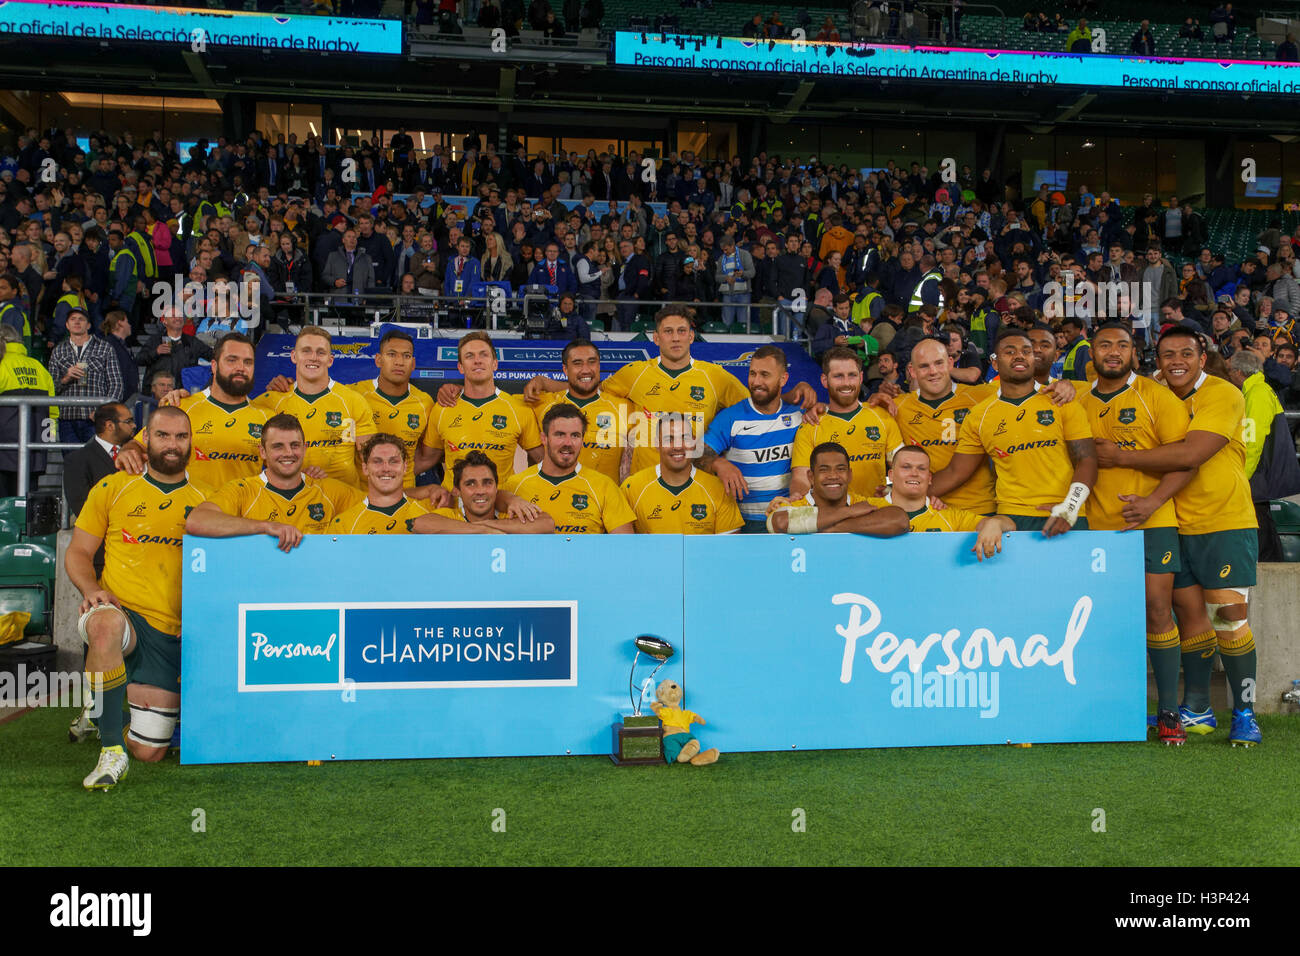 velocidad Florecer compañera de clases  The Australian Wallabies pose for a team picture following the rugby Stock  Photo - Alamy